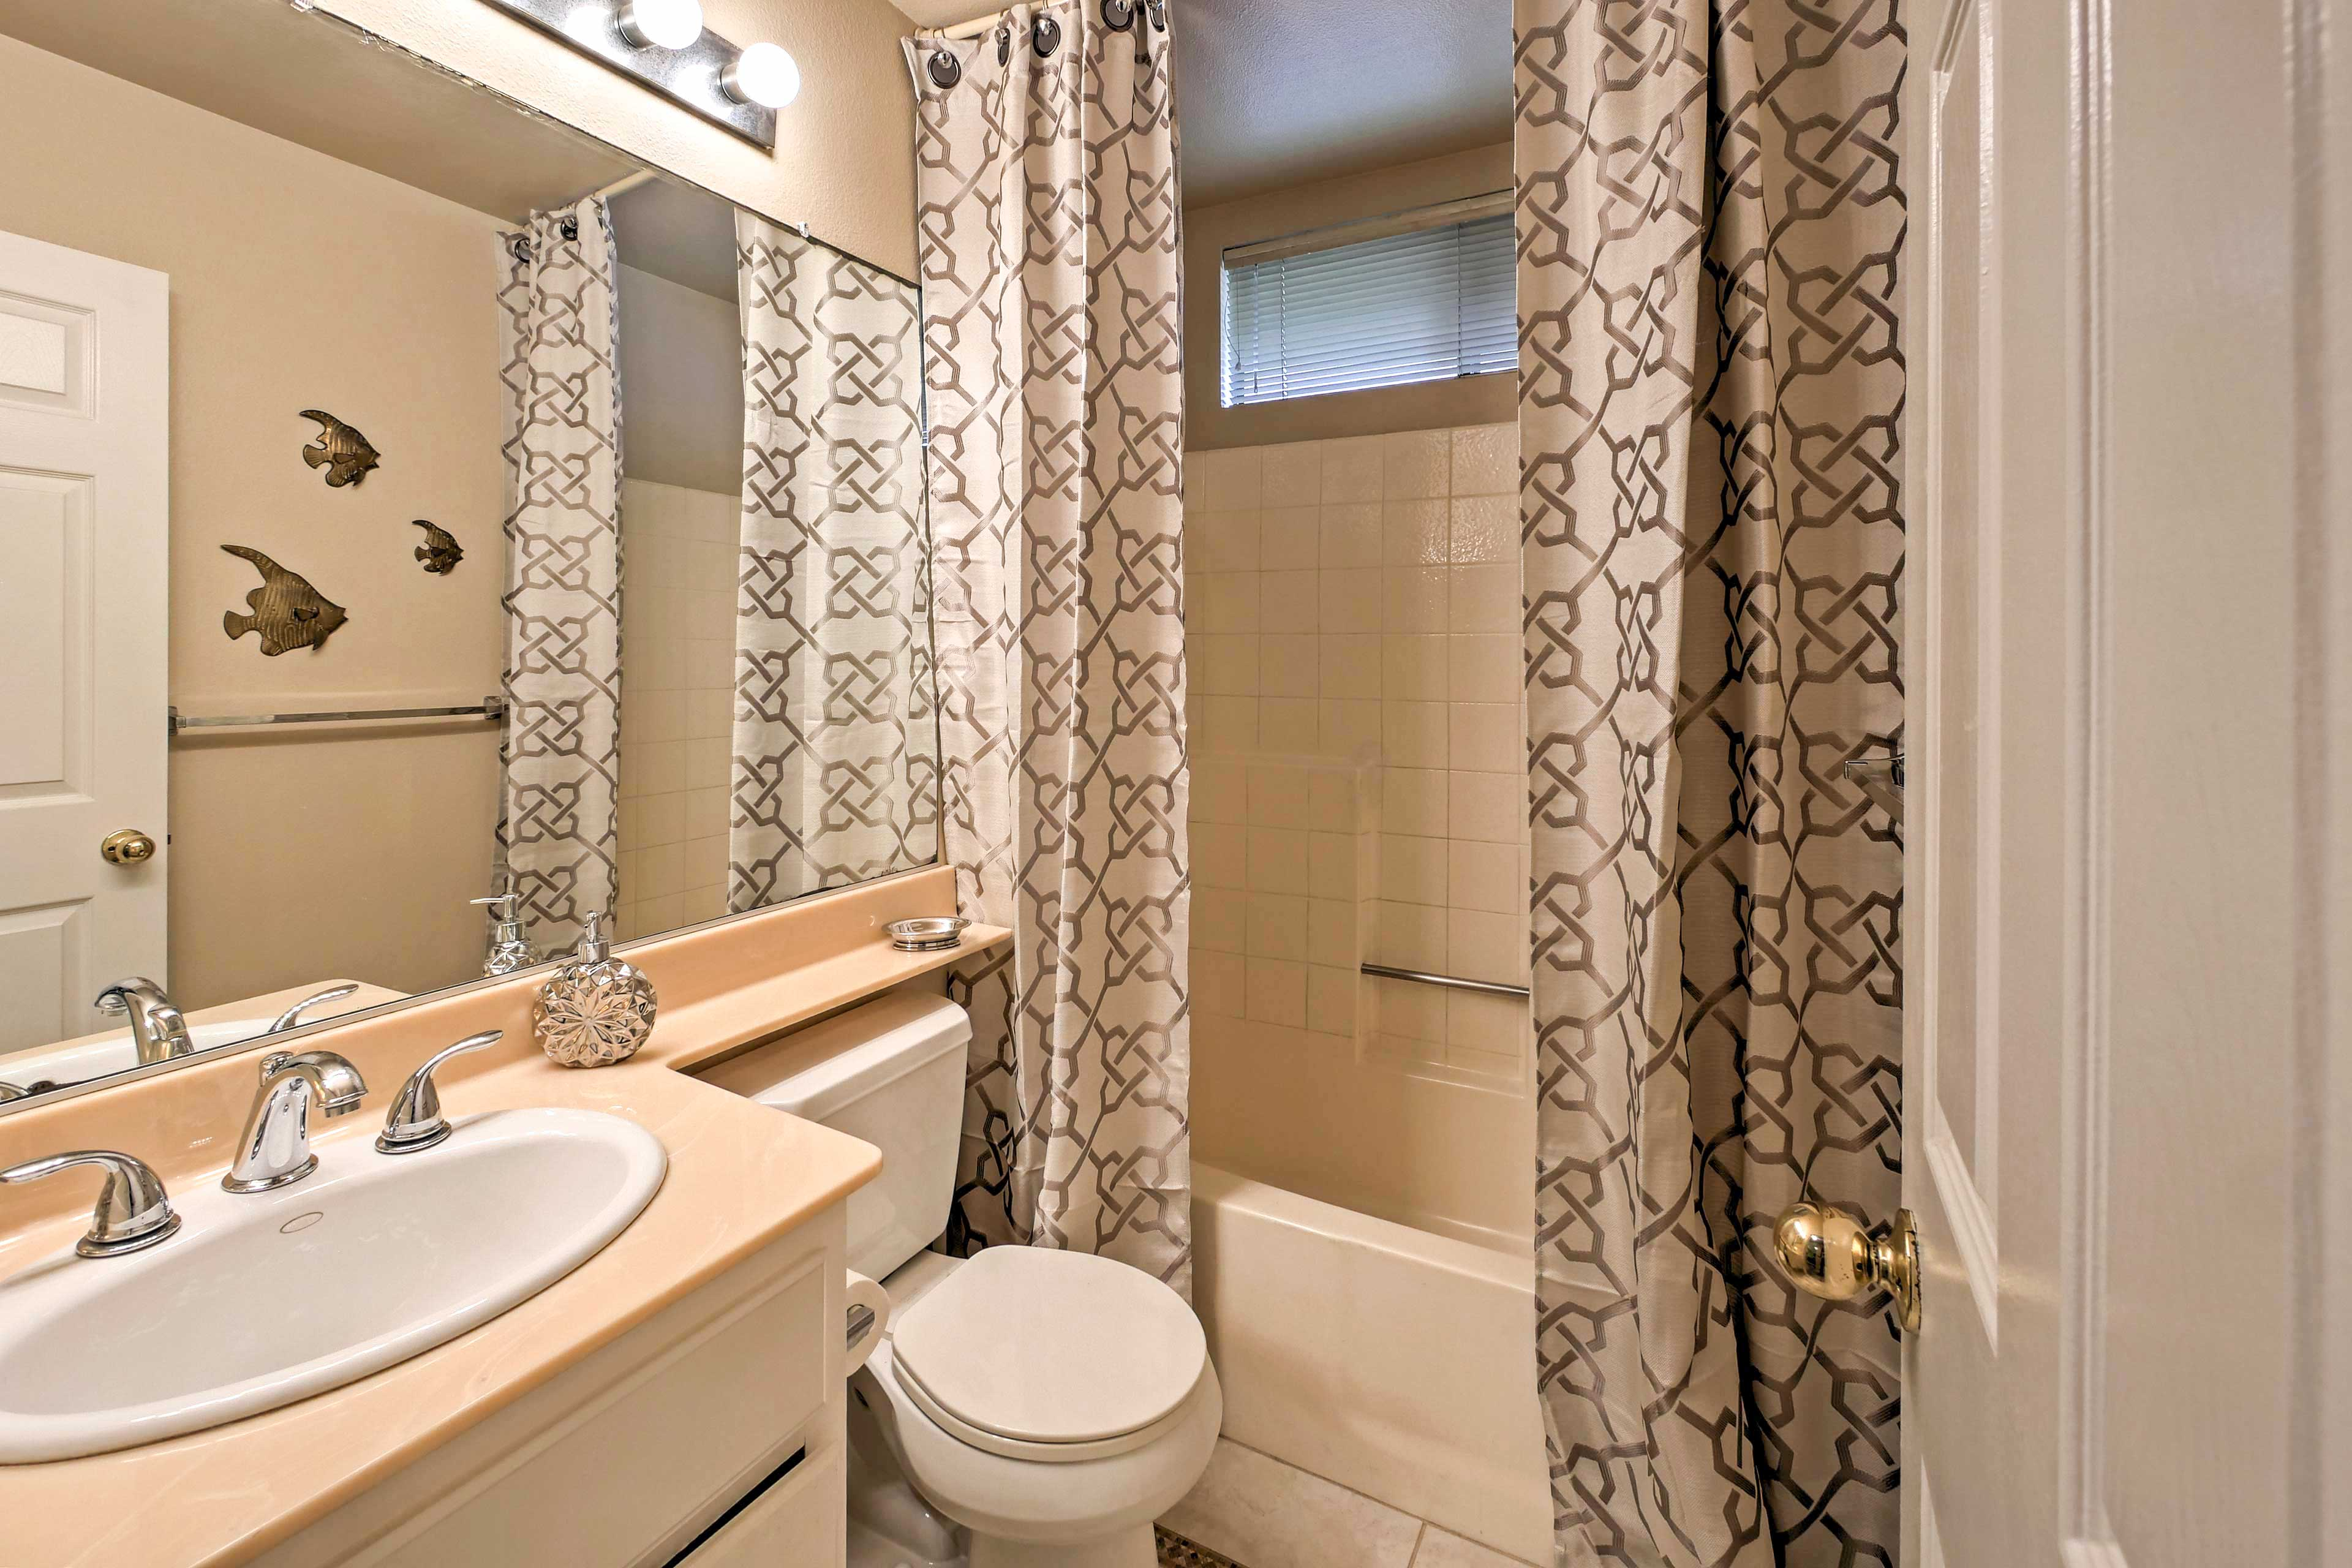 This bathroom also has a shower/tub combo.